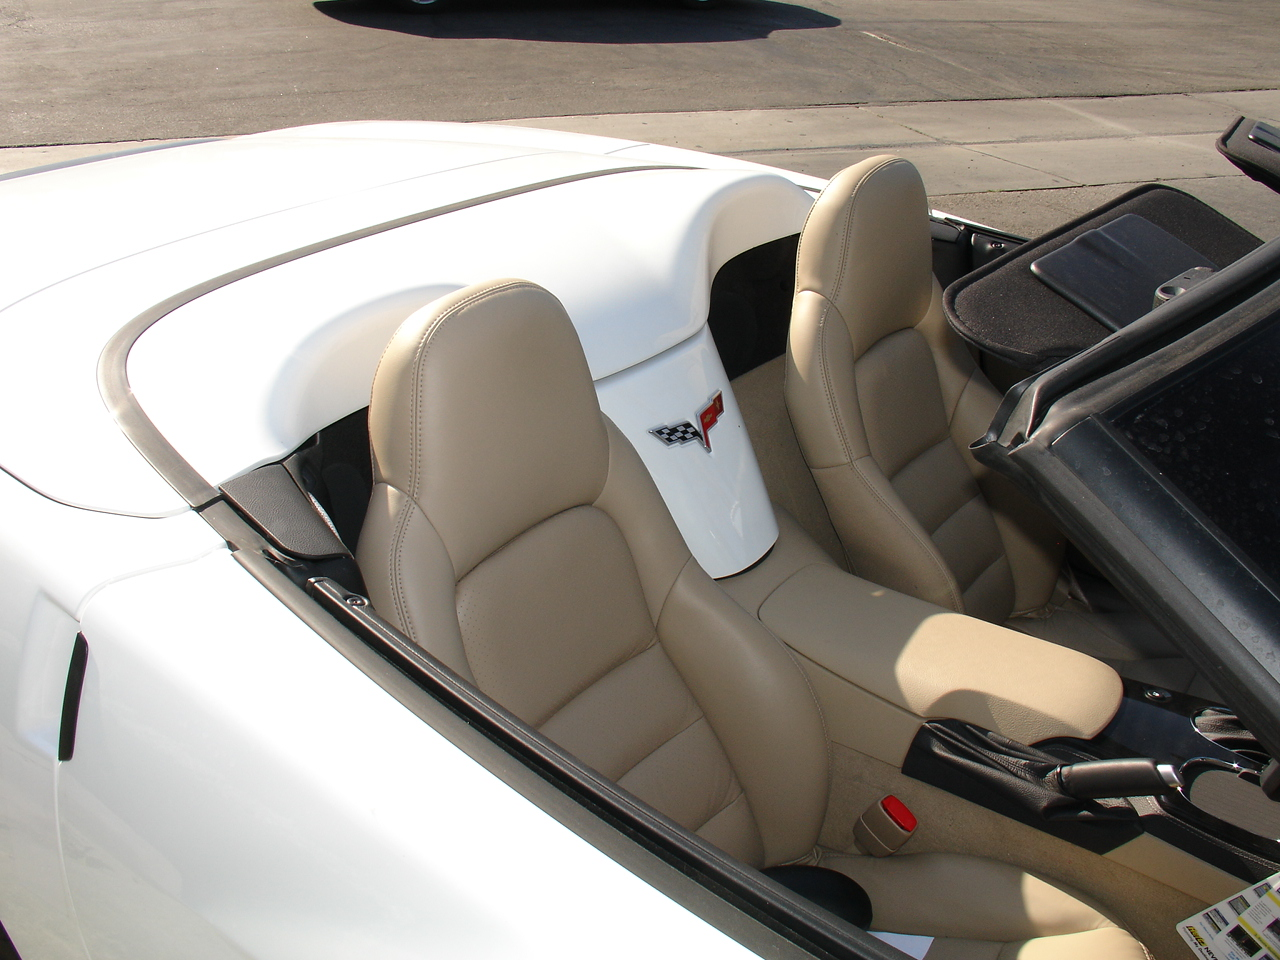 2008 Chevrolet Corvette Convertible - leather seating